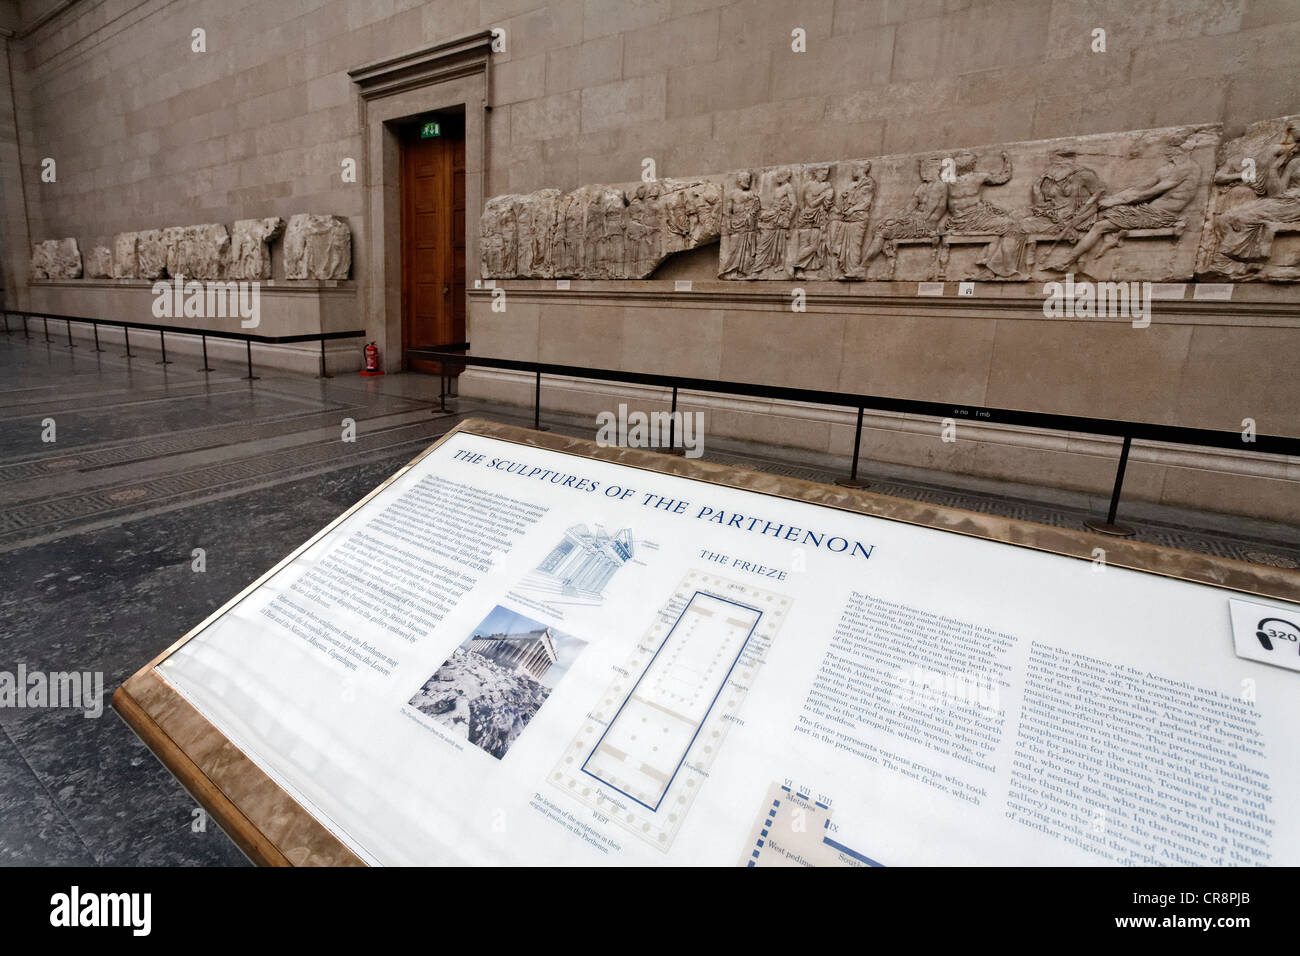 Hall with the Elgin Marbles, marble frieze from the Athens Parthenon, British Museum, London, England, United Kingdom, Stock Photo